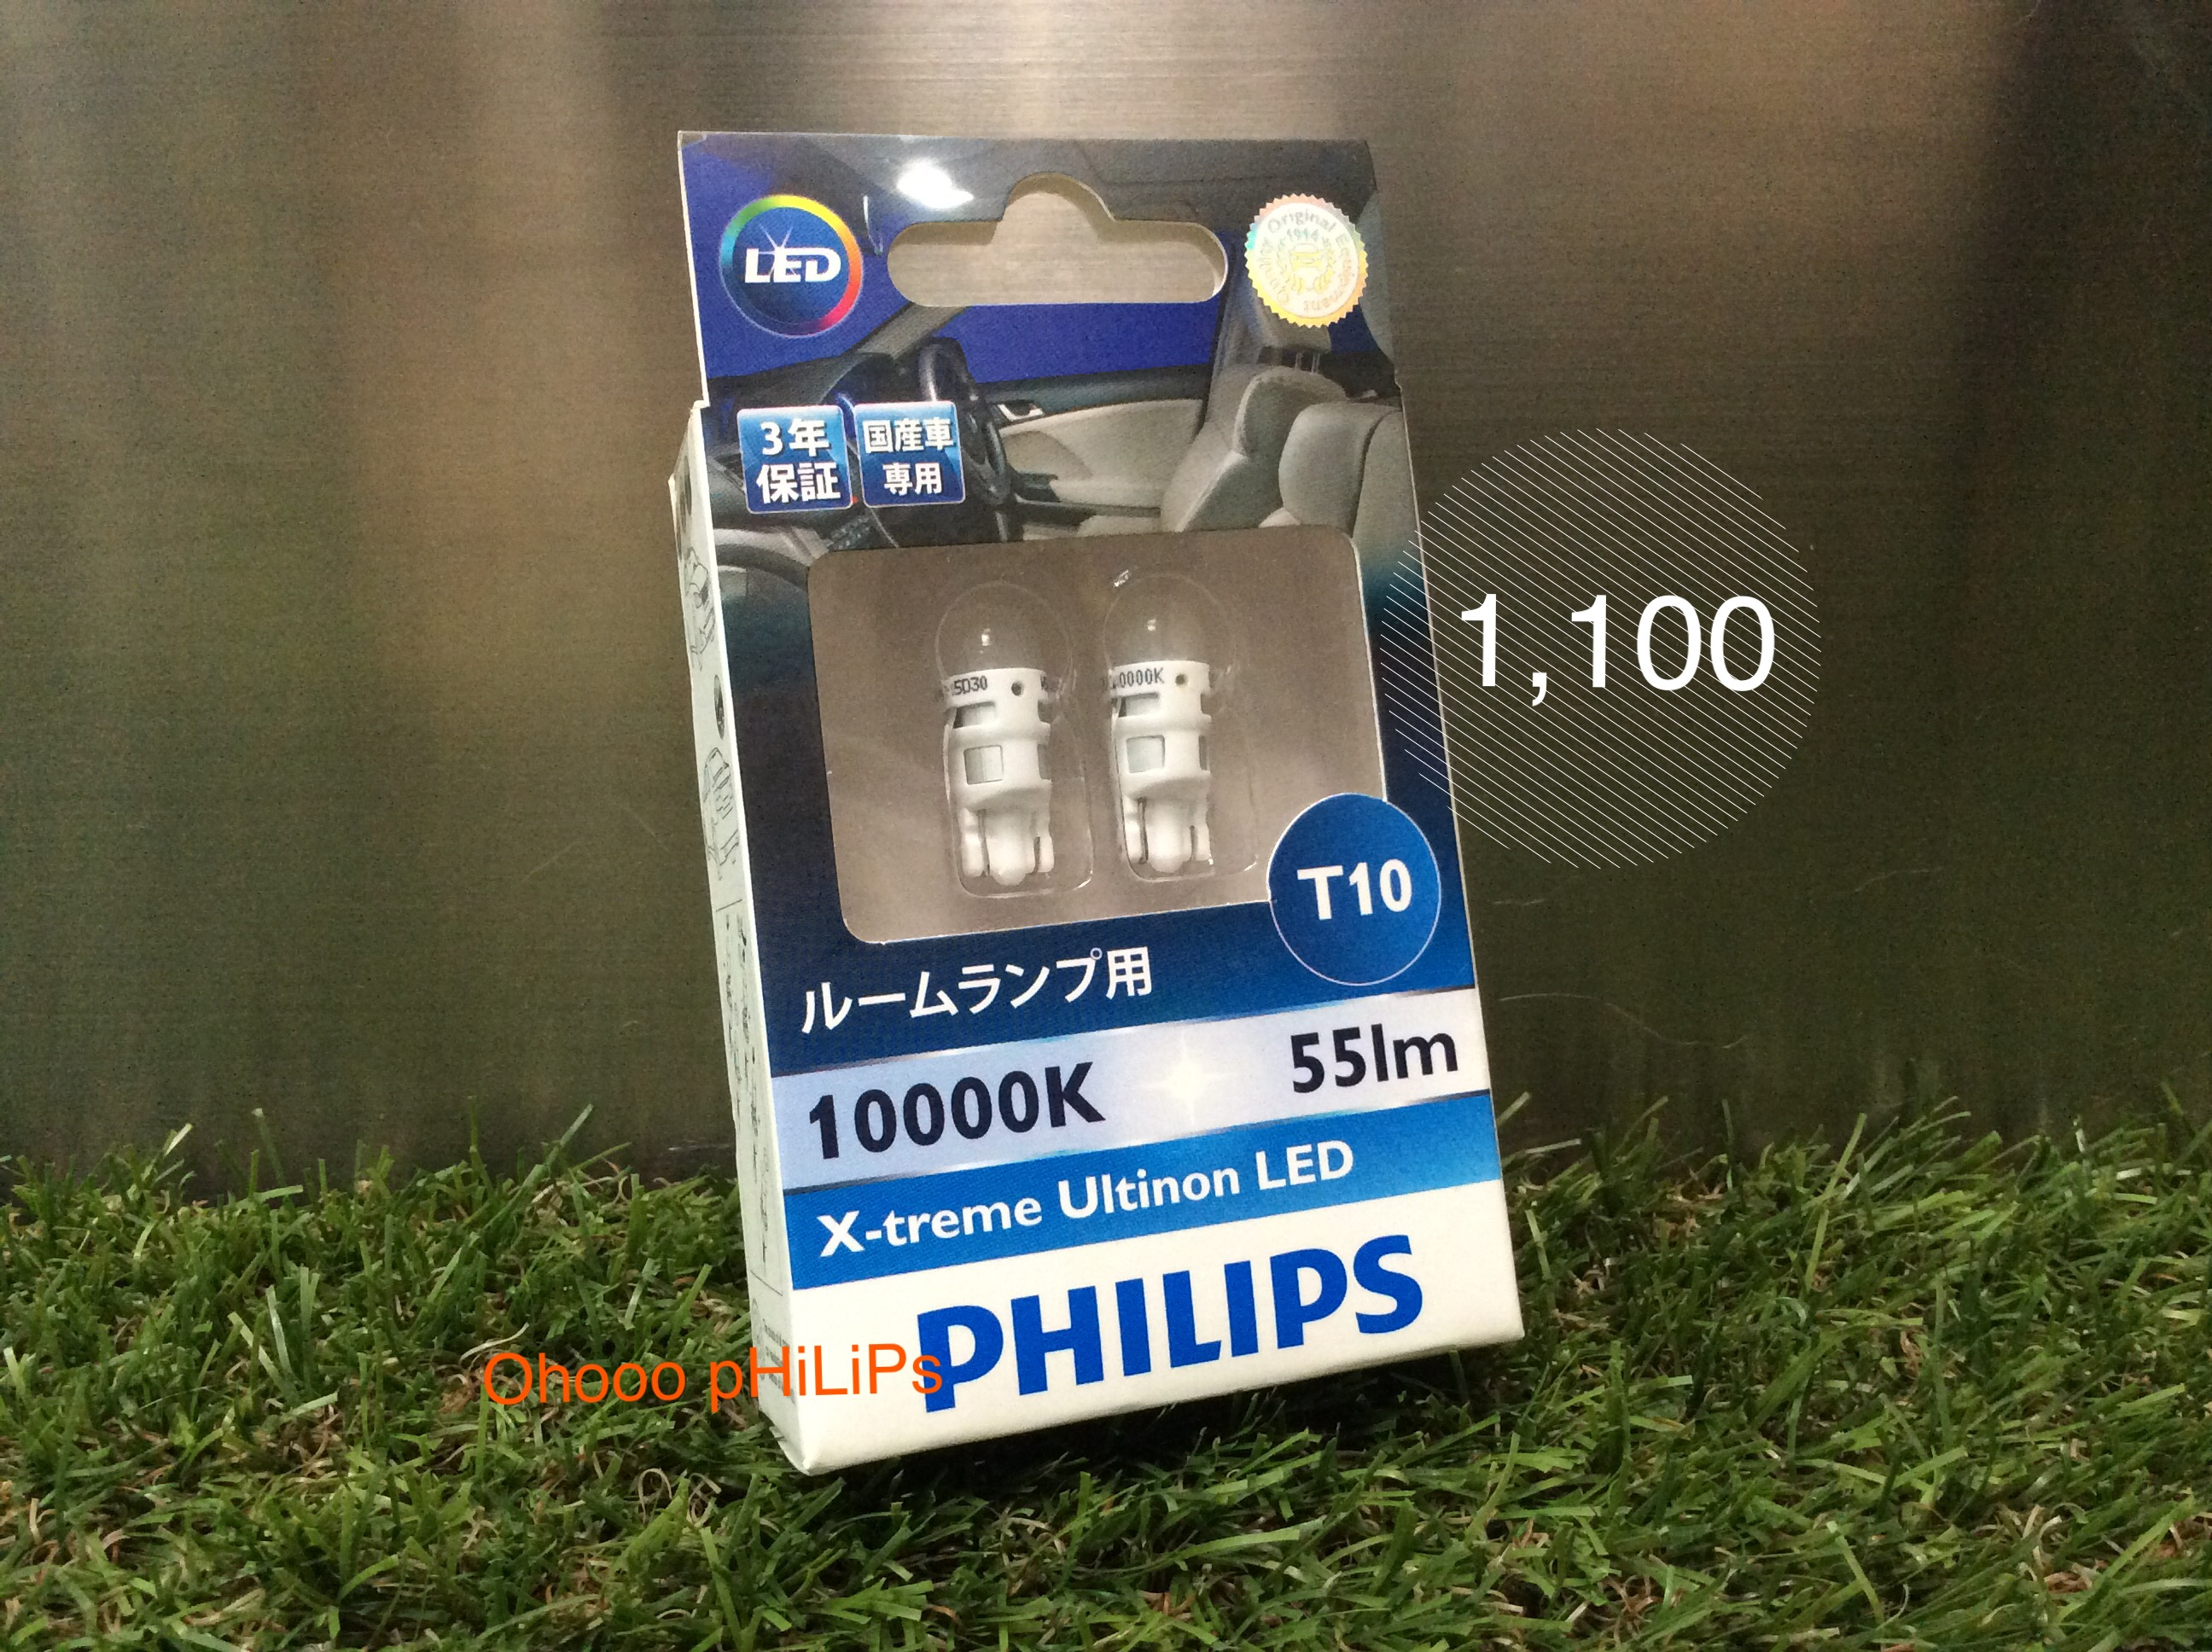 Philips LED T10 10000K